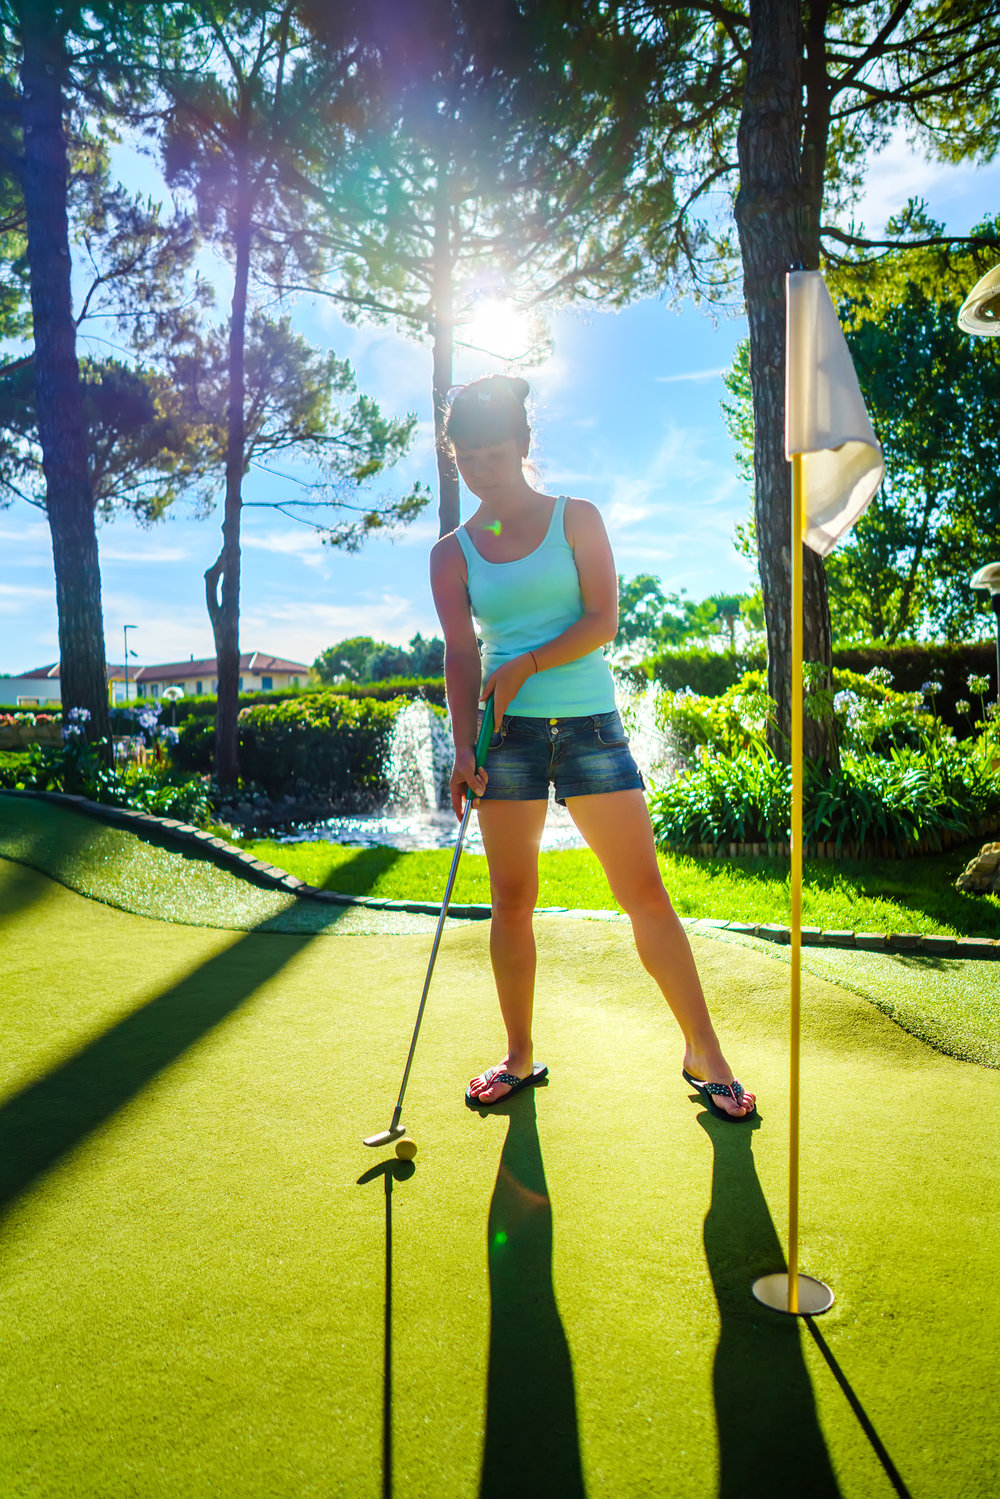 mini-golf-woman-playing-golf-on-green-grass-at-WZNL6KJ.jpg